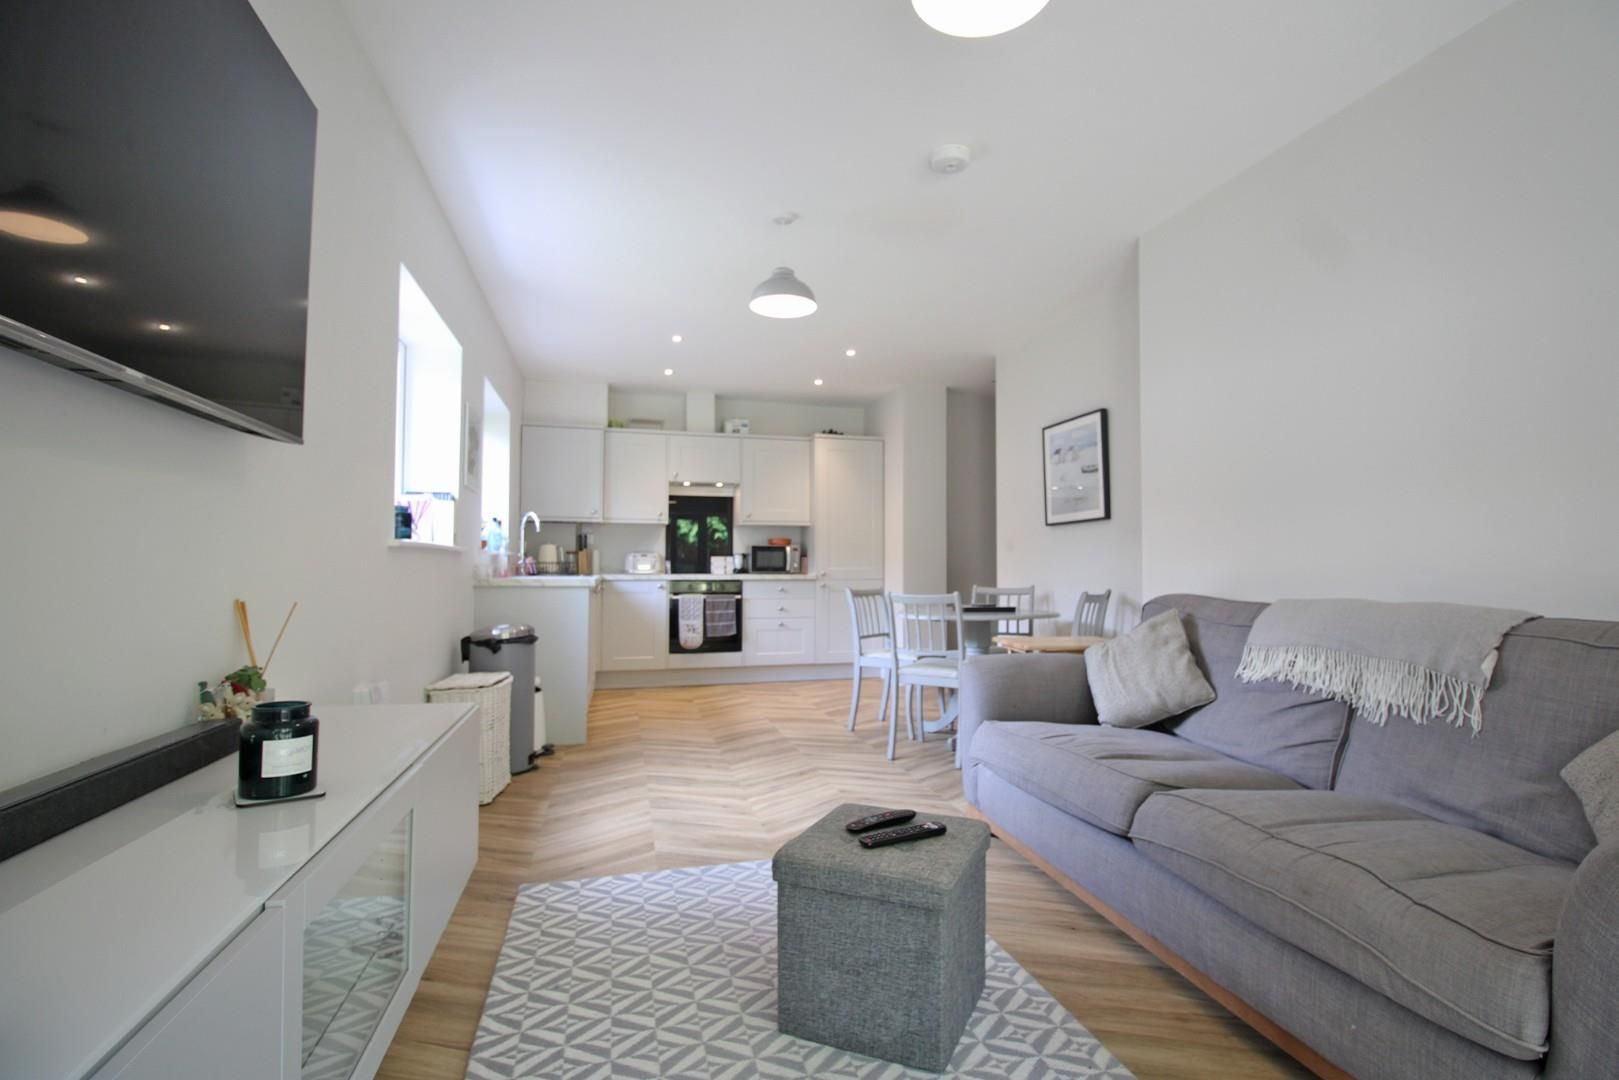 2 bed apartment to rent - Property Image 1